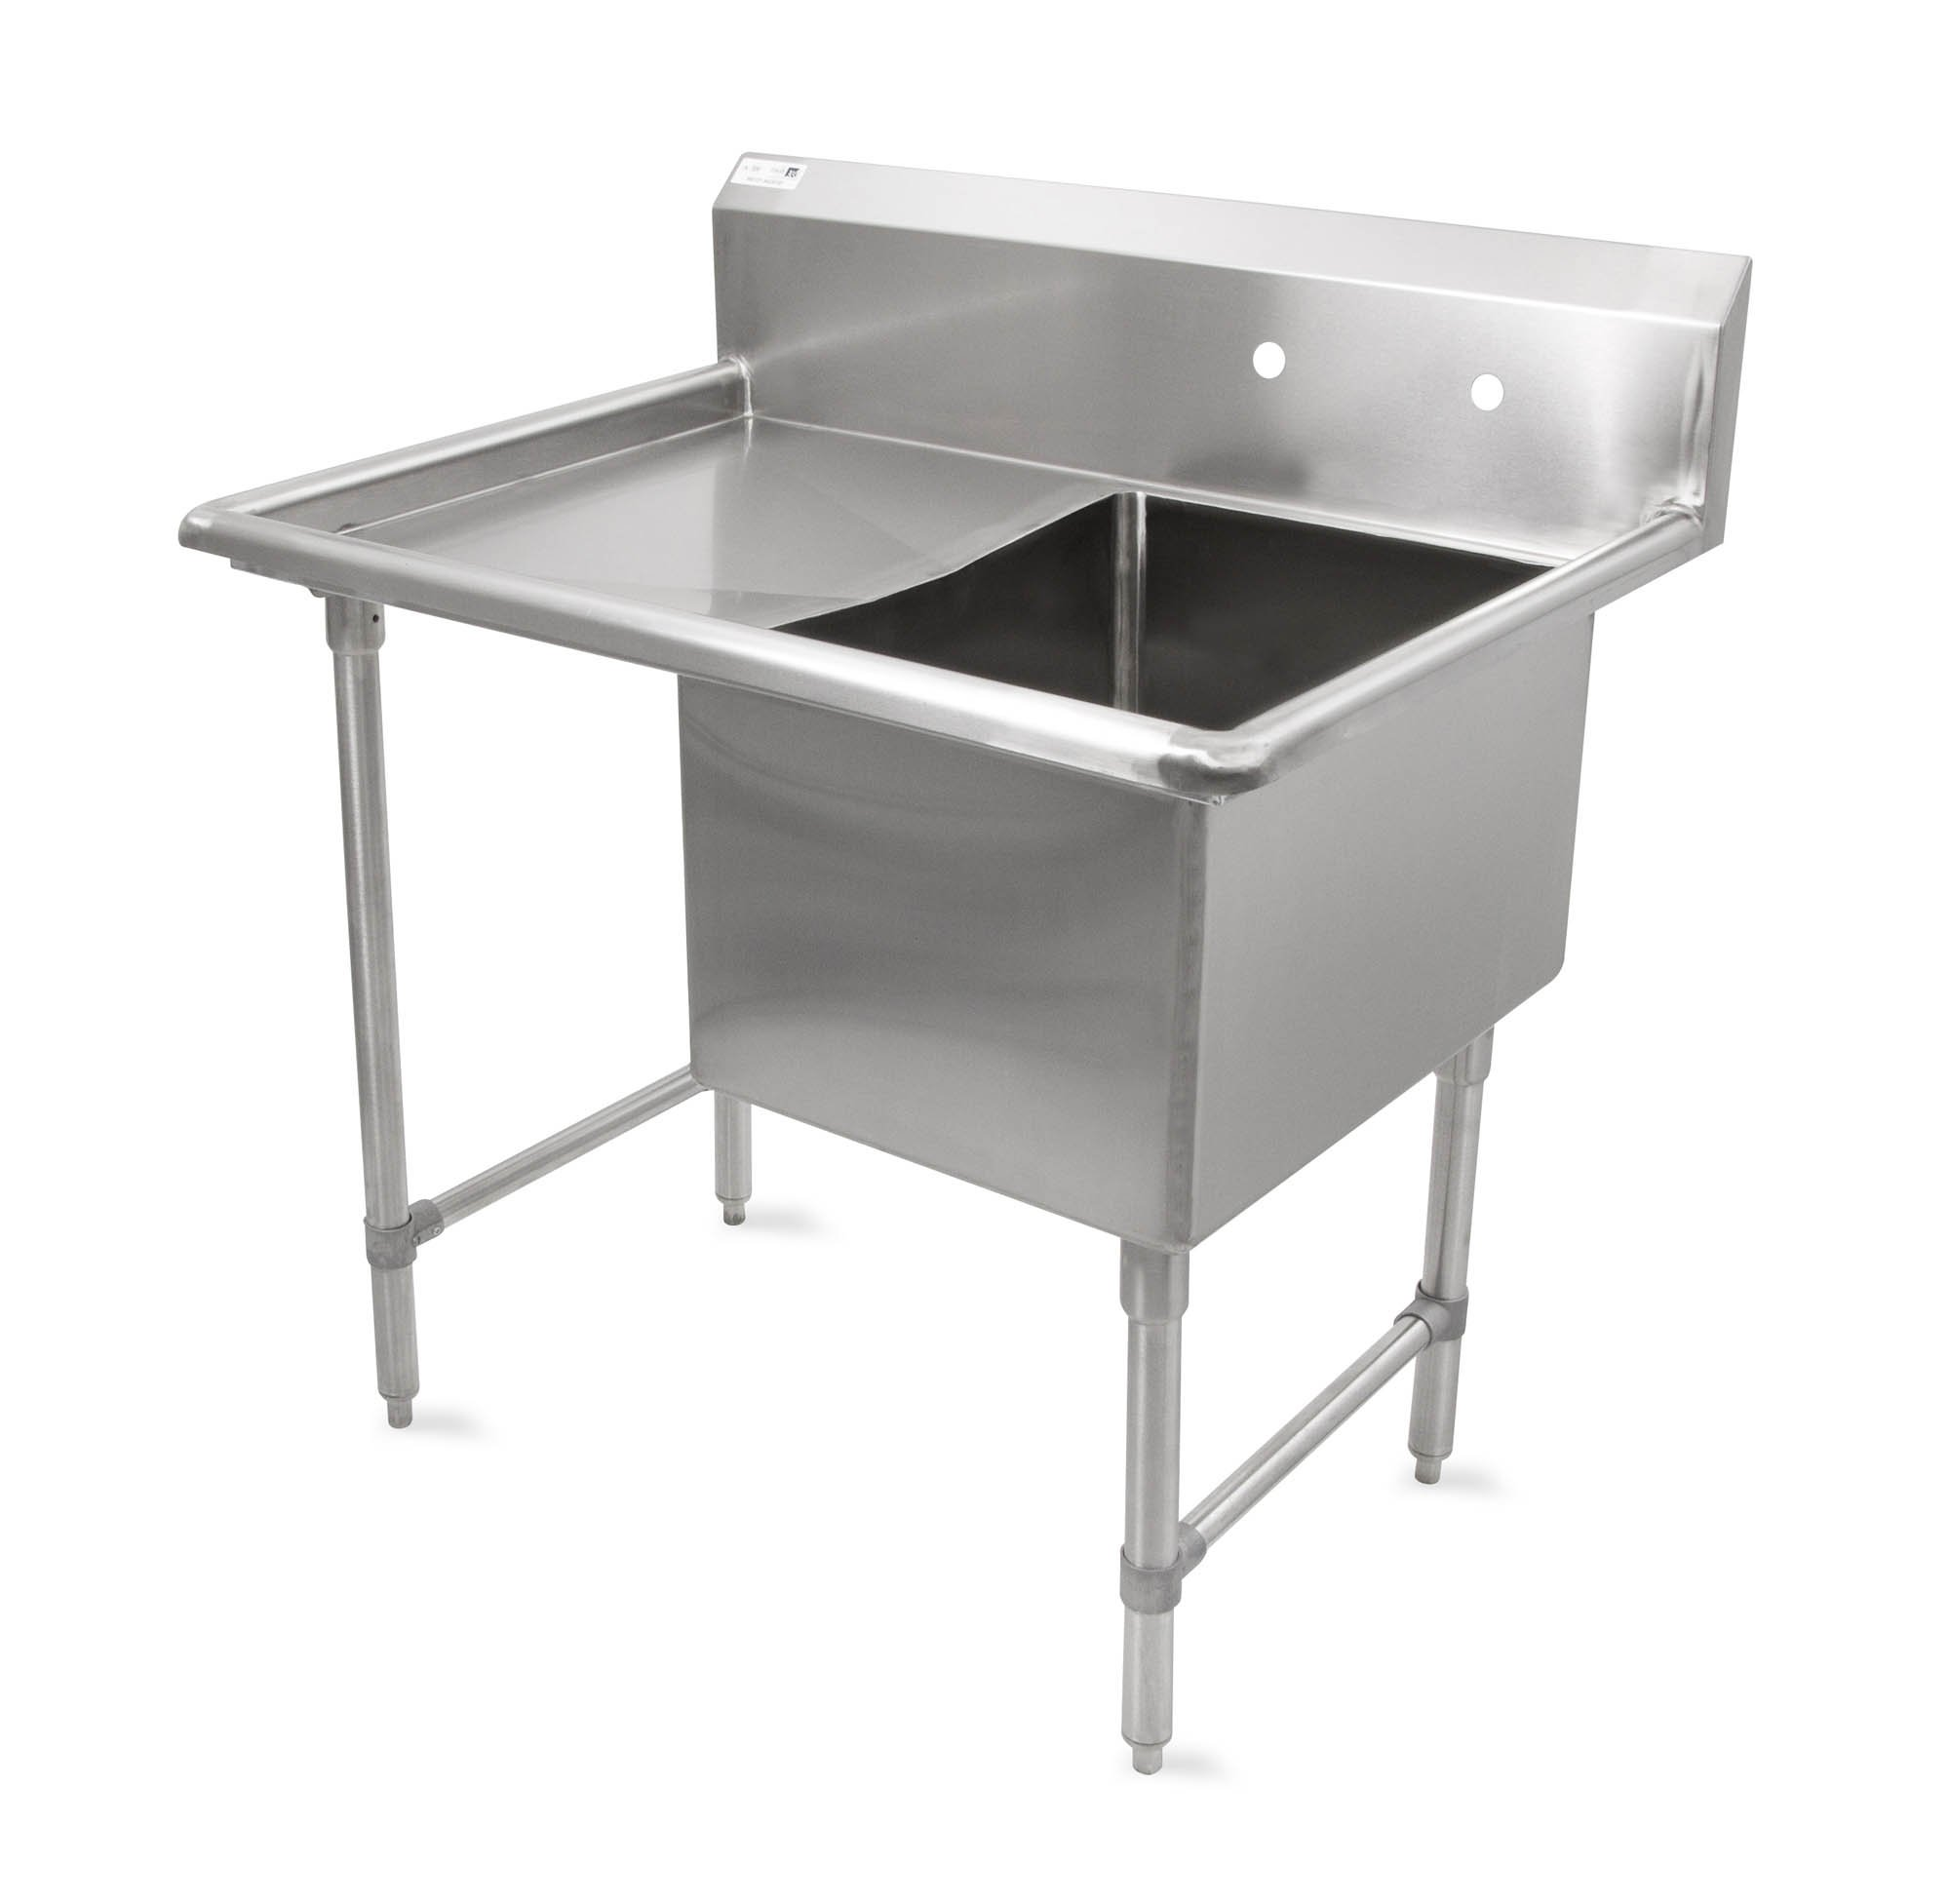 John Boos B Series Stainless Steel Sink, 14'' Deep Bowl, 1 Compartment, 18'' Left Hand Side Drainboard, 38'' Length x 25-1/2'' Width